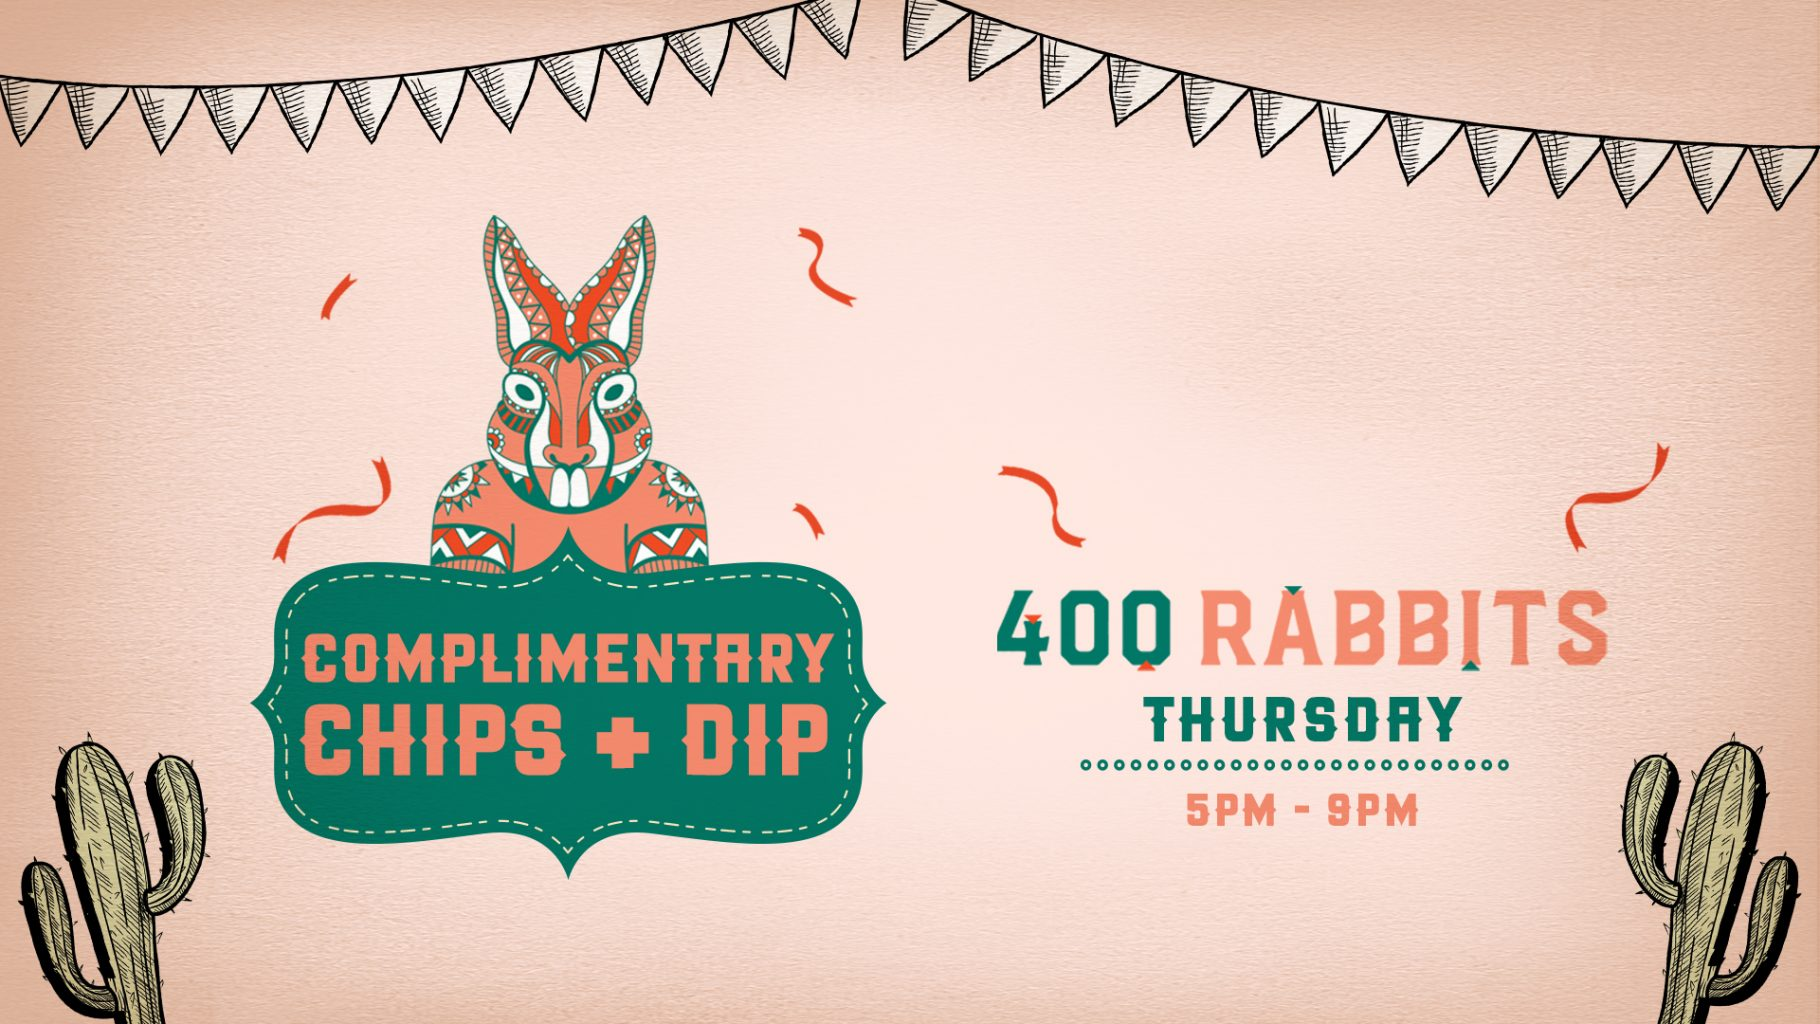 Complimentary Chips and Dip every Thursday!